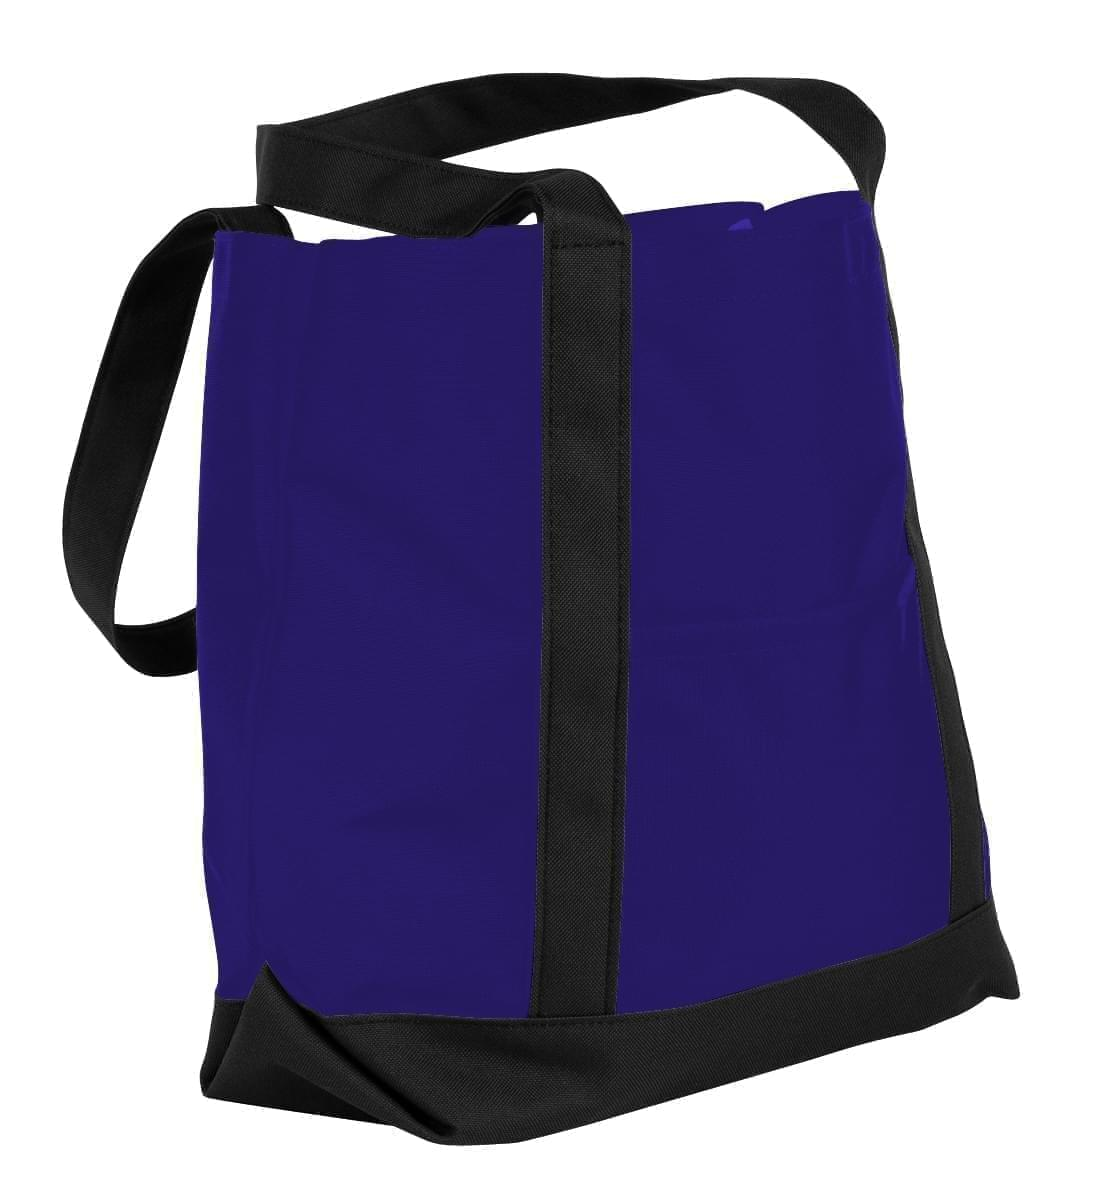 USA Made Nylon Poly Boat Tote Bags, Purple-Black, XAACL1UAYC